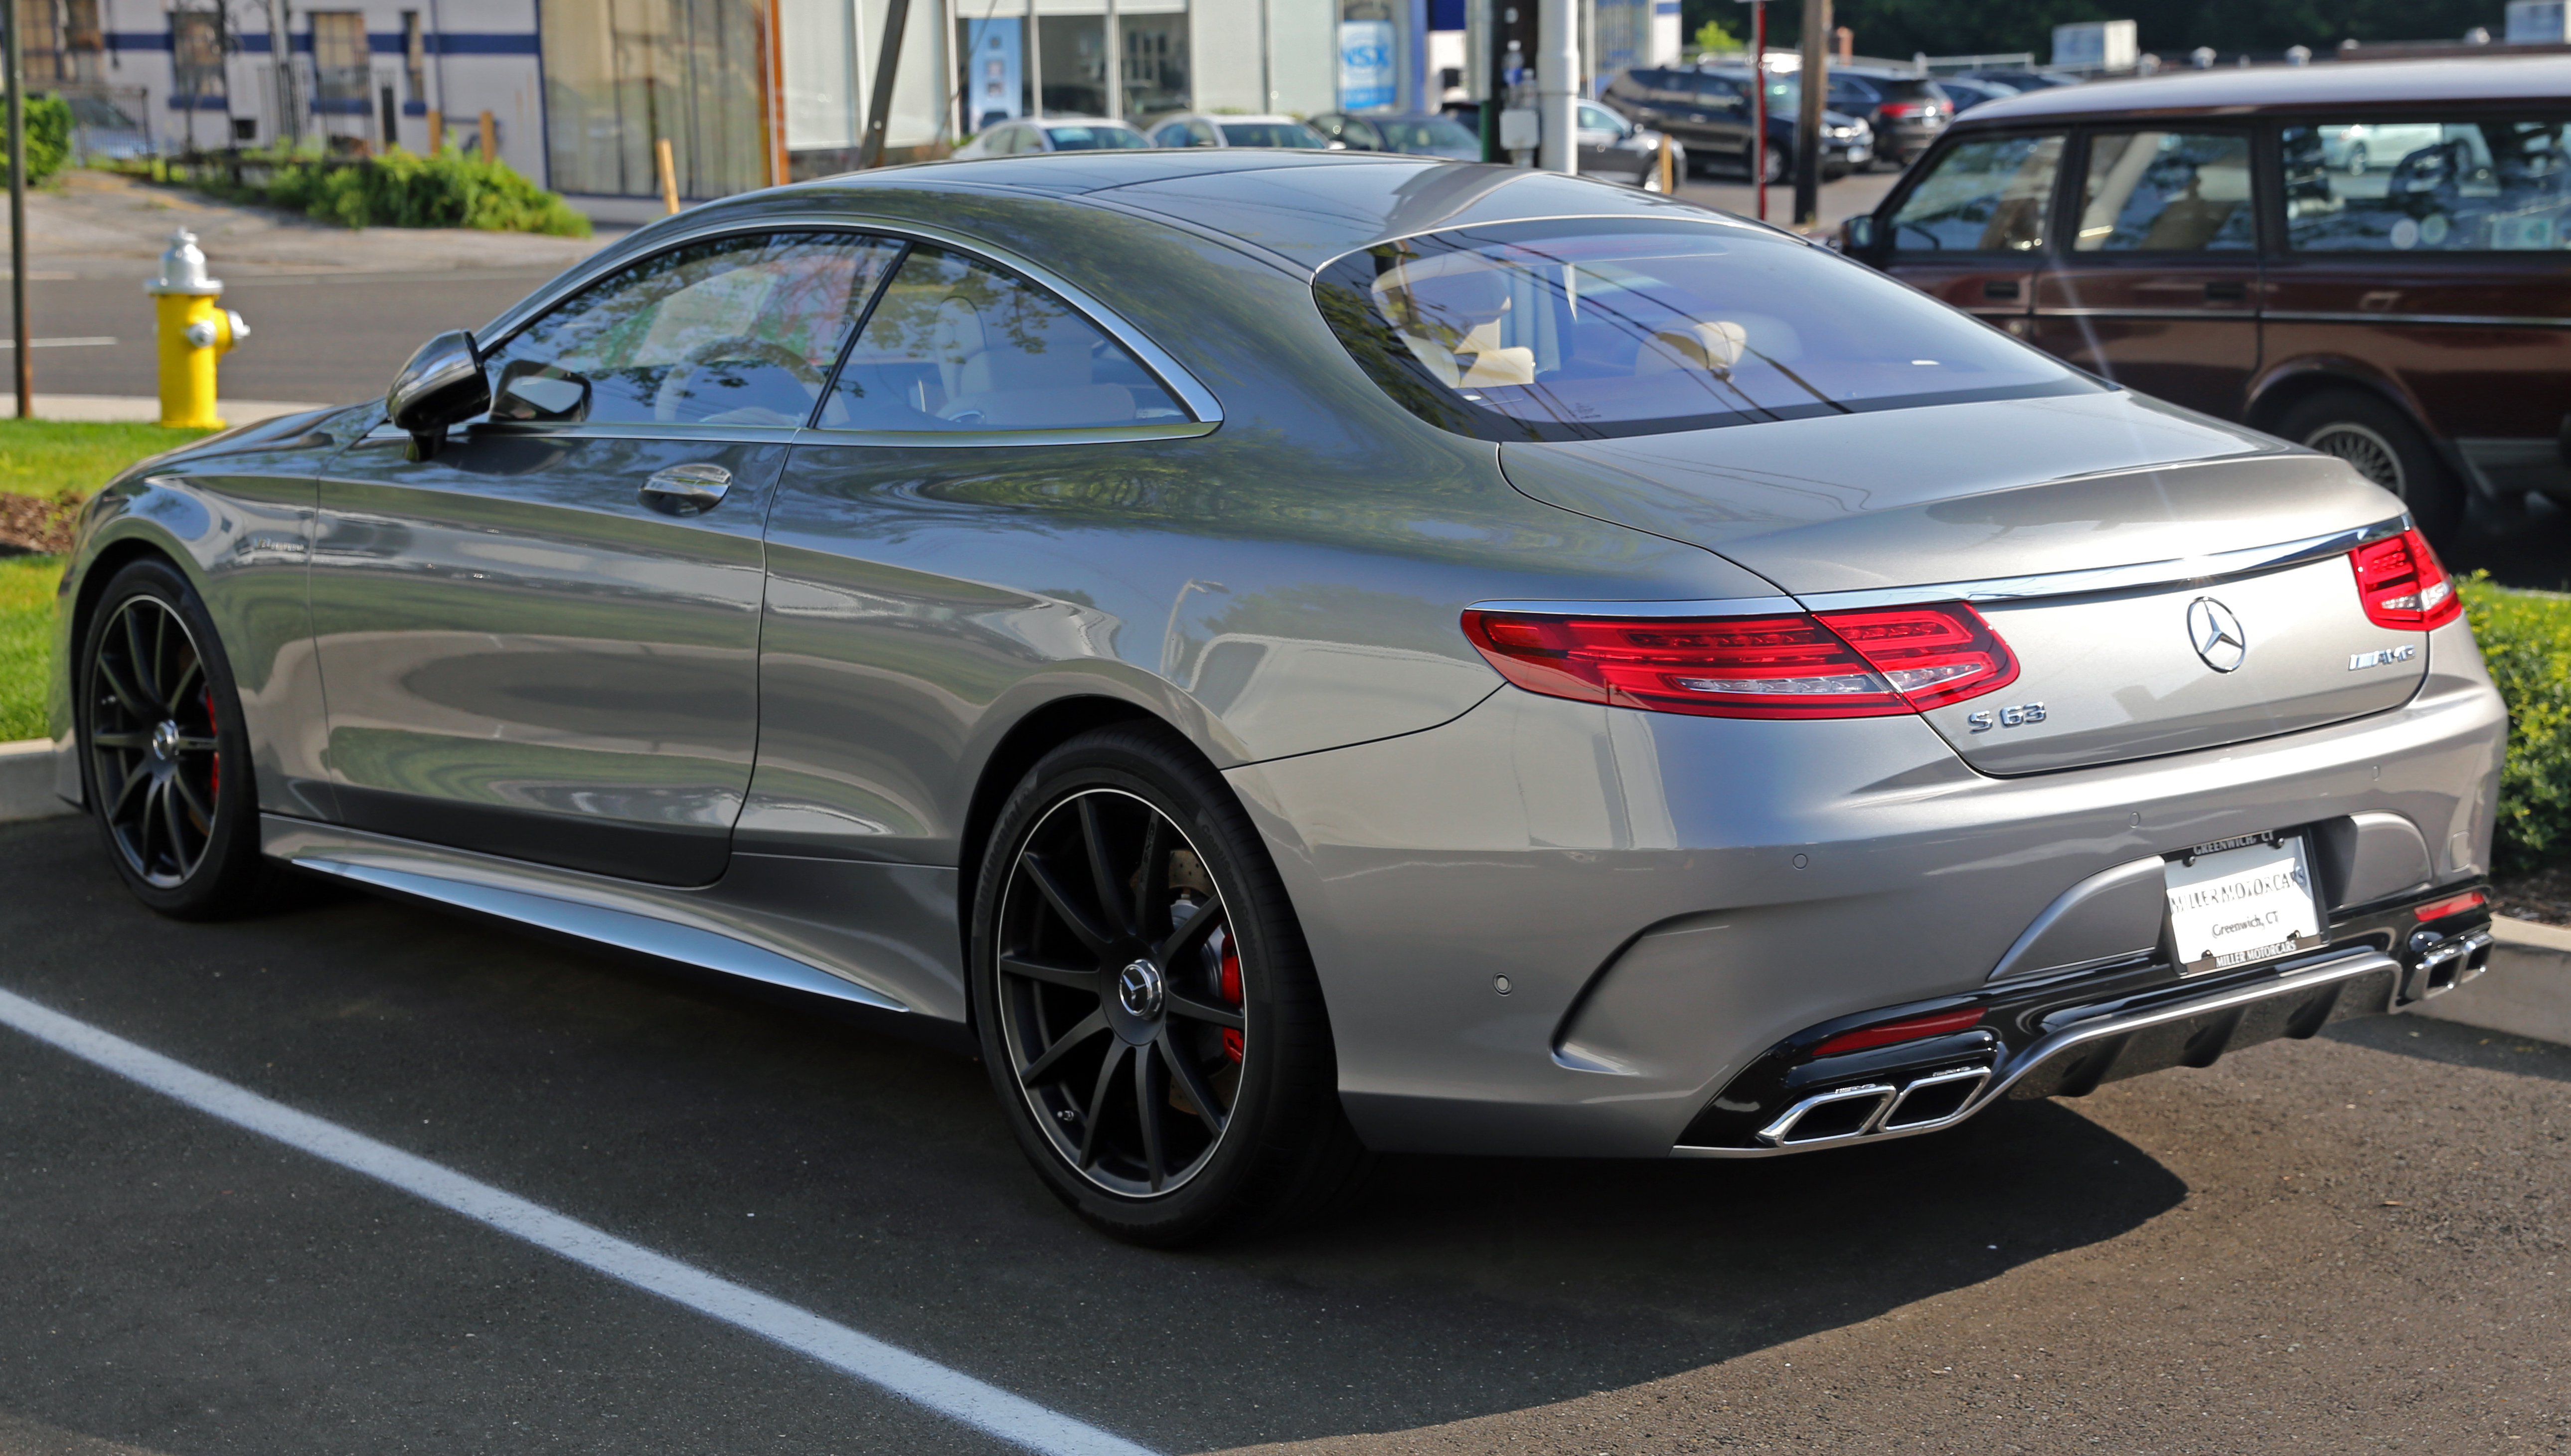 File:2015 Mercedes-Benz S63 AMG Coupé, rear left (US).jpg - Wikimedia Commons